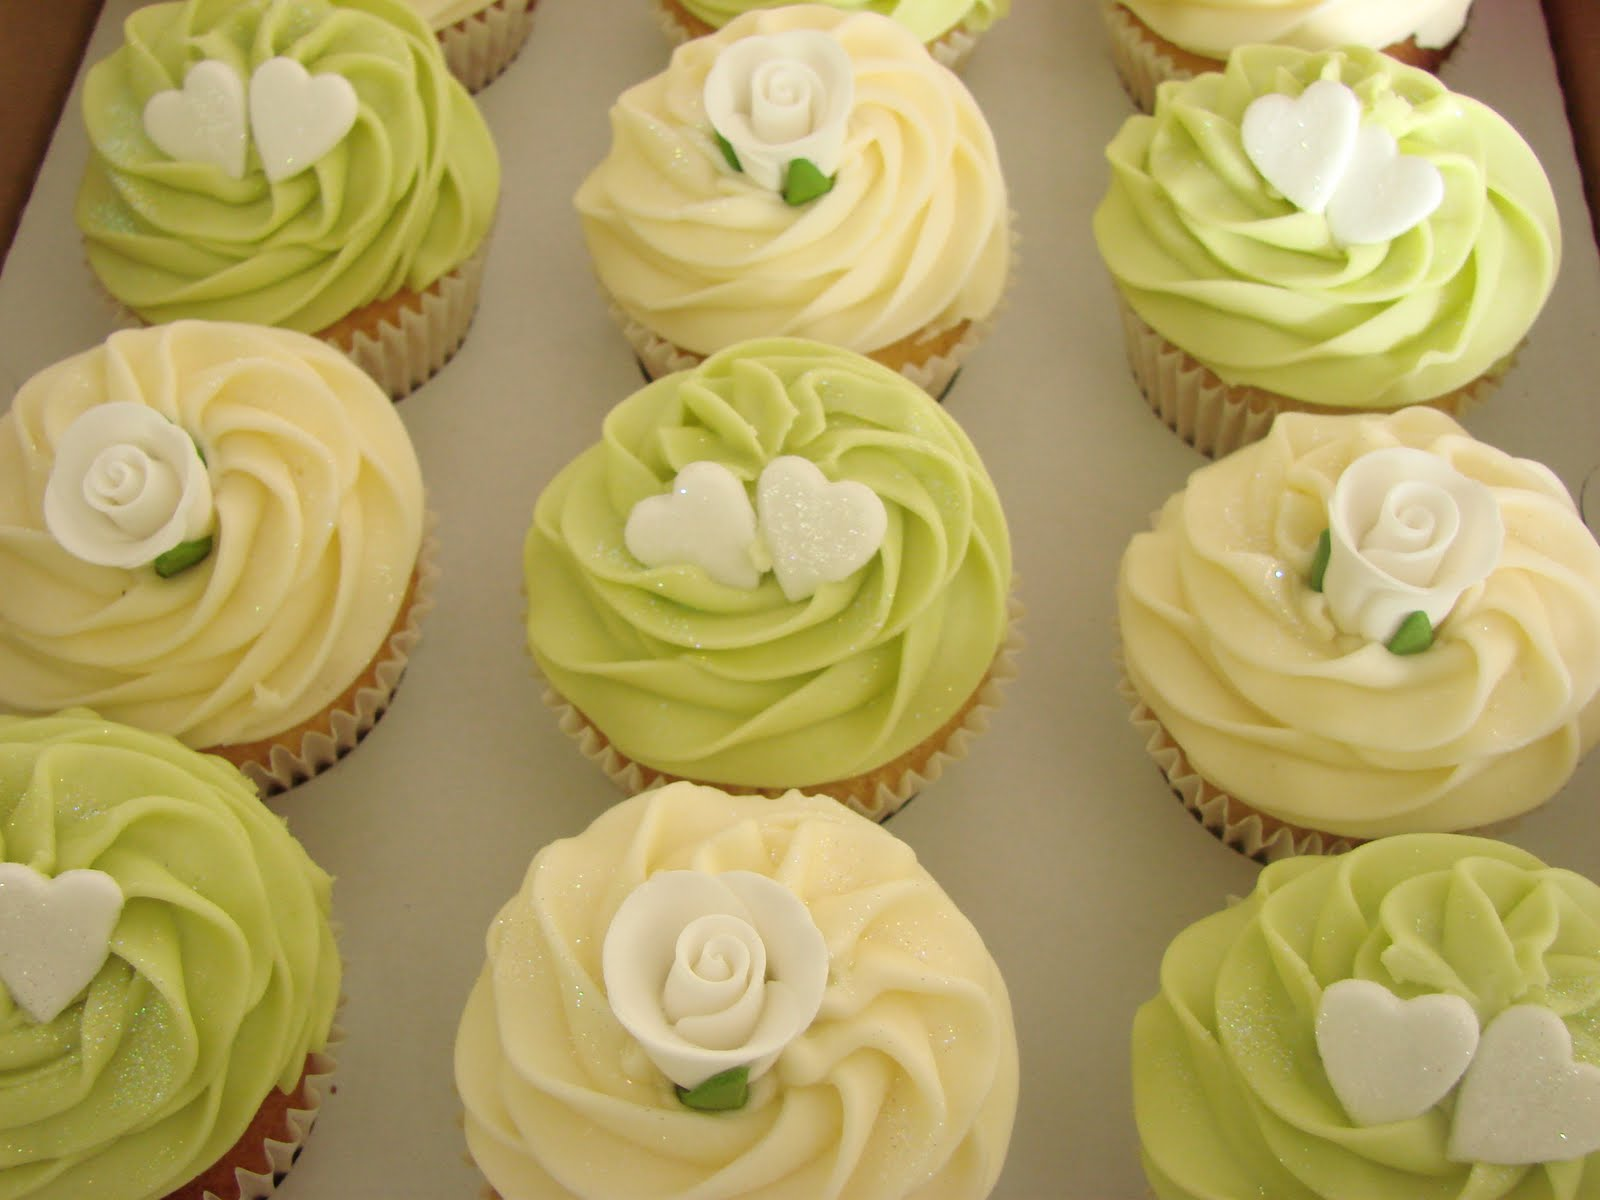 These are some of Jennis wedding cupcakes we sent to her work collegues in